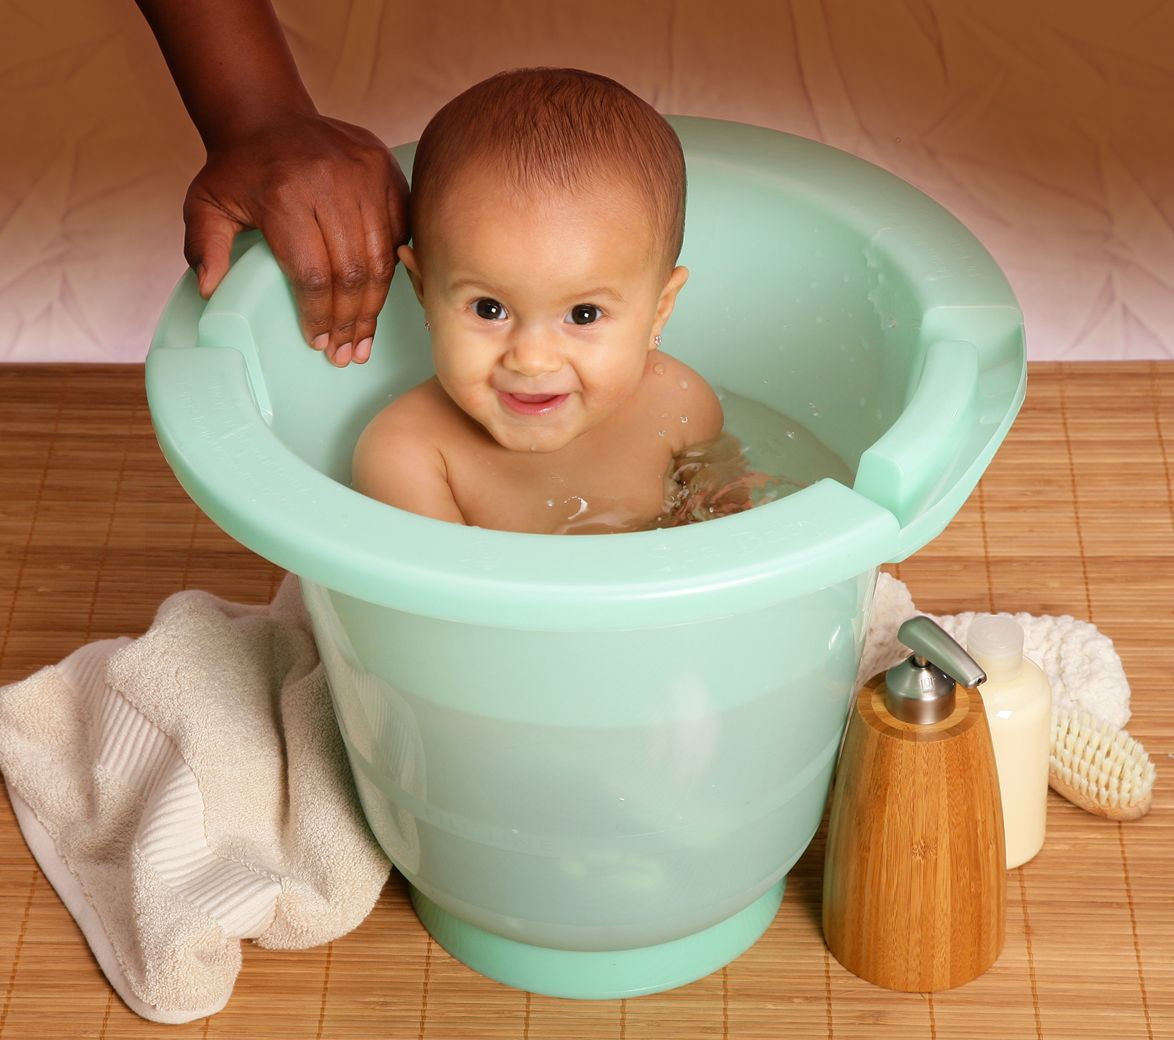 life more simply spa baby eco european bath tub review. Black Bedroom Furniture Sets. Home Design Ideas